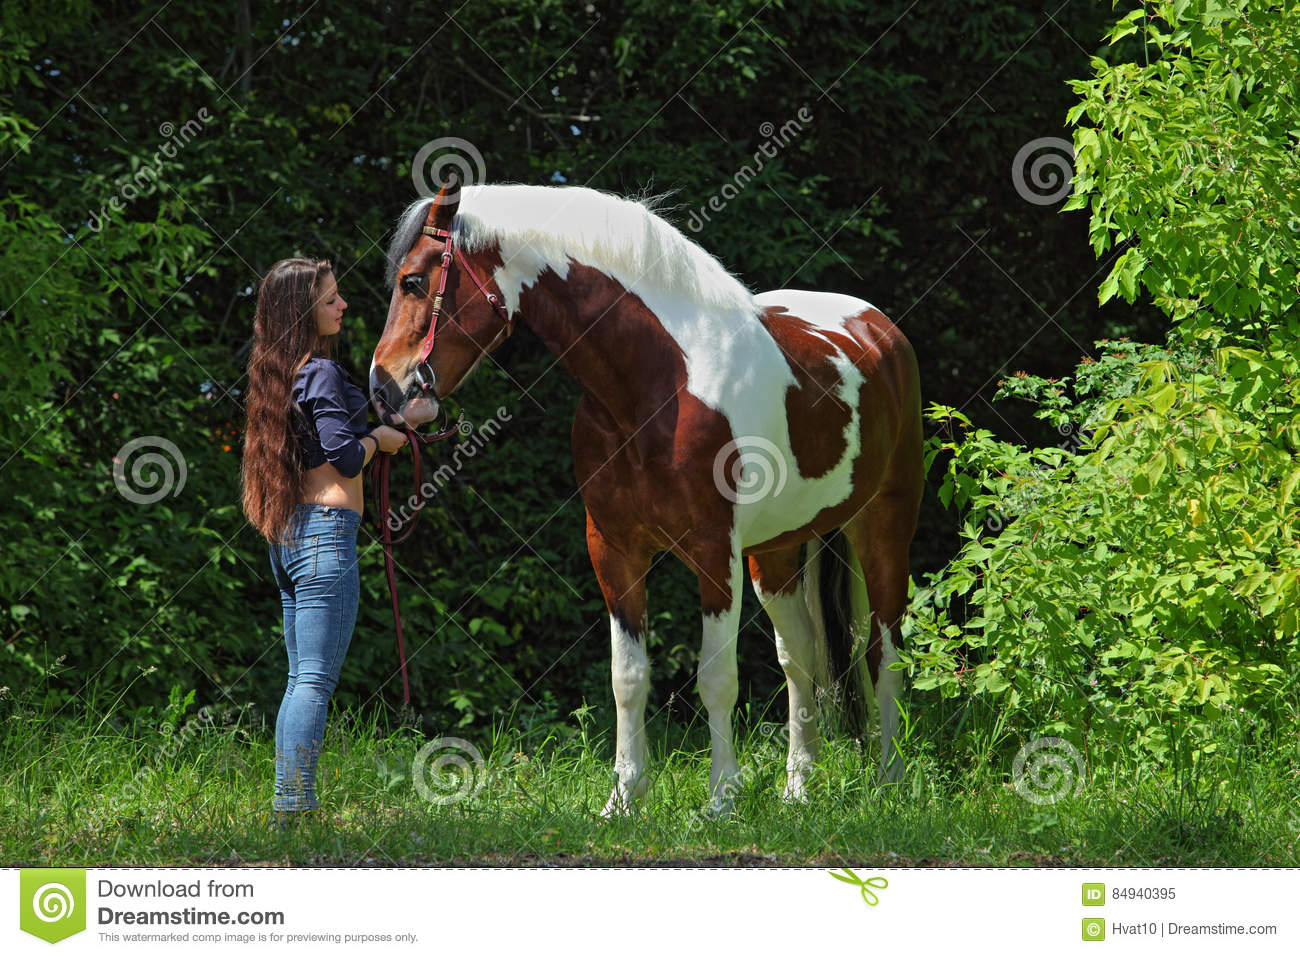 Beauty Cowgirl With Appaloosa Horse Stock Image Image Of Casual Cowgirl 84940395